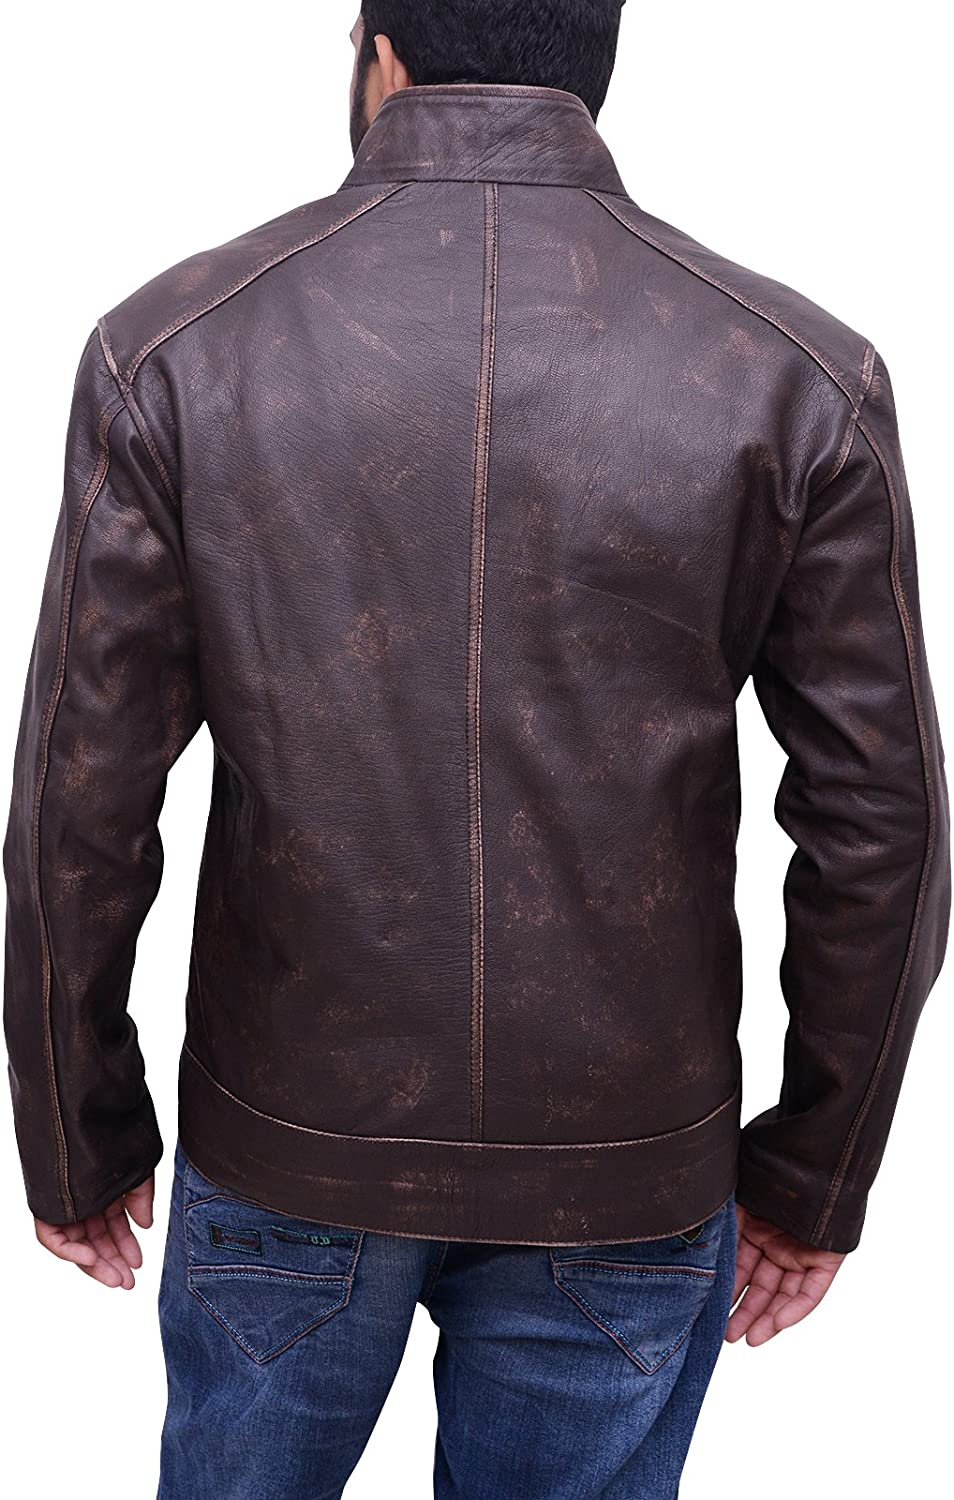 Trendhoop Cafe Racer Mens Leather Jacket Brown Real Cow Skin Perfecto Motorcycle Leather Jackets